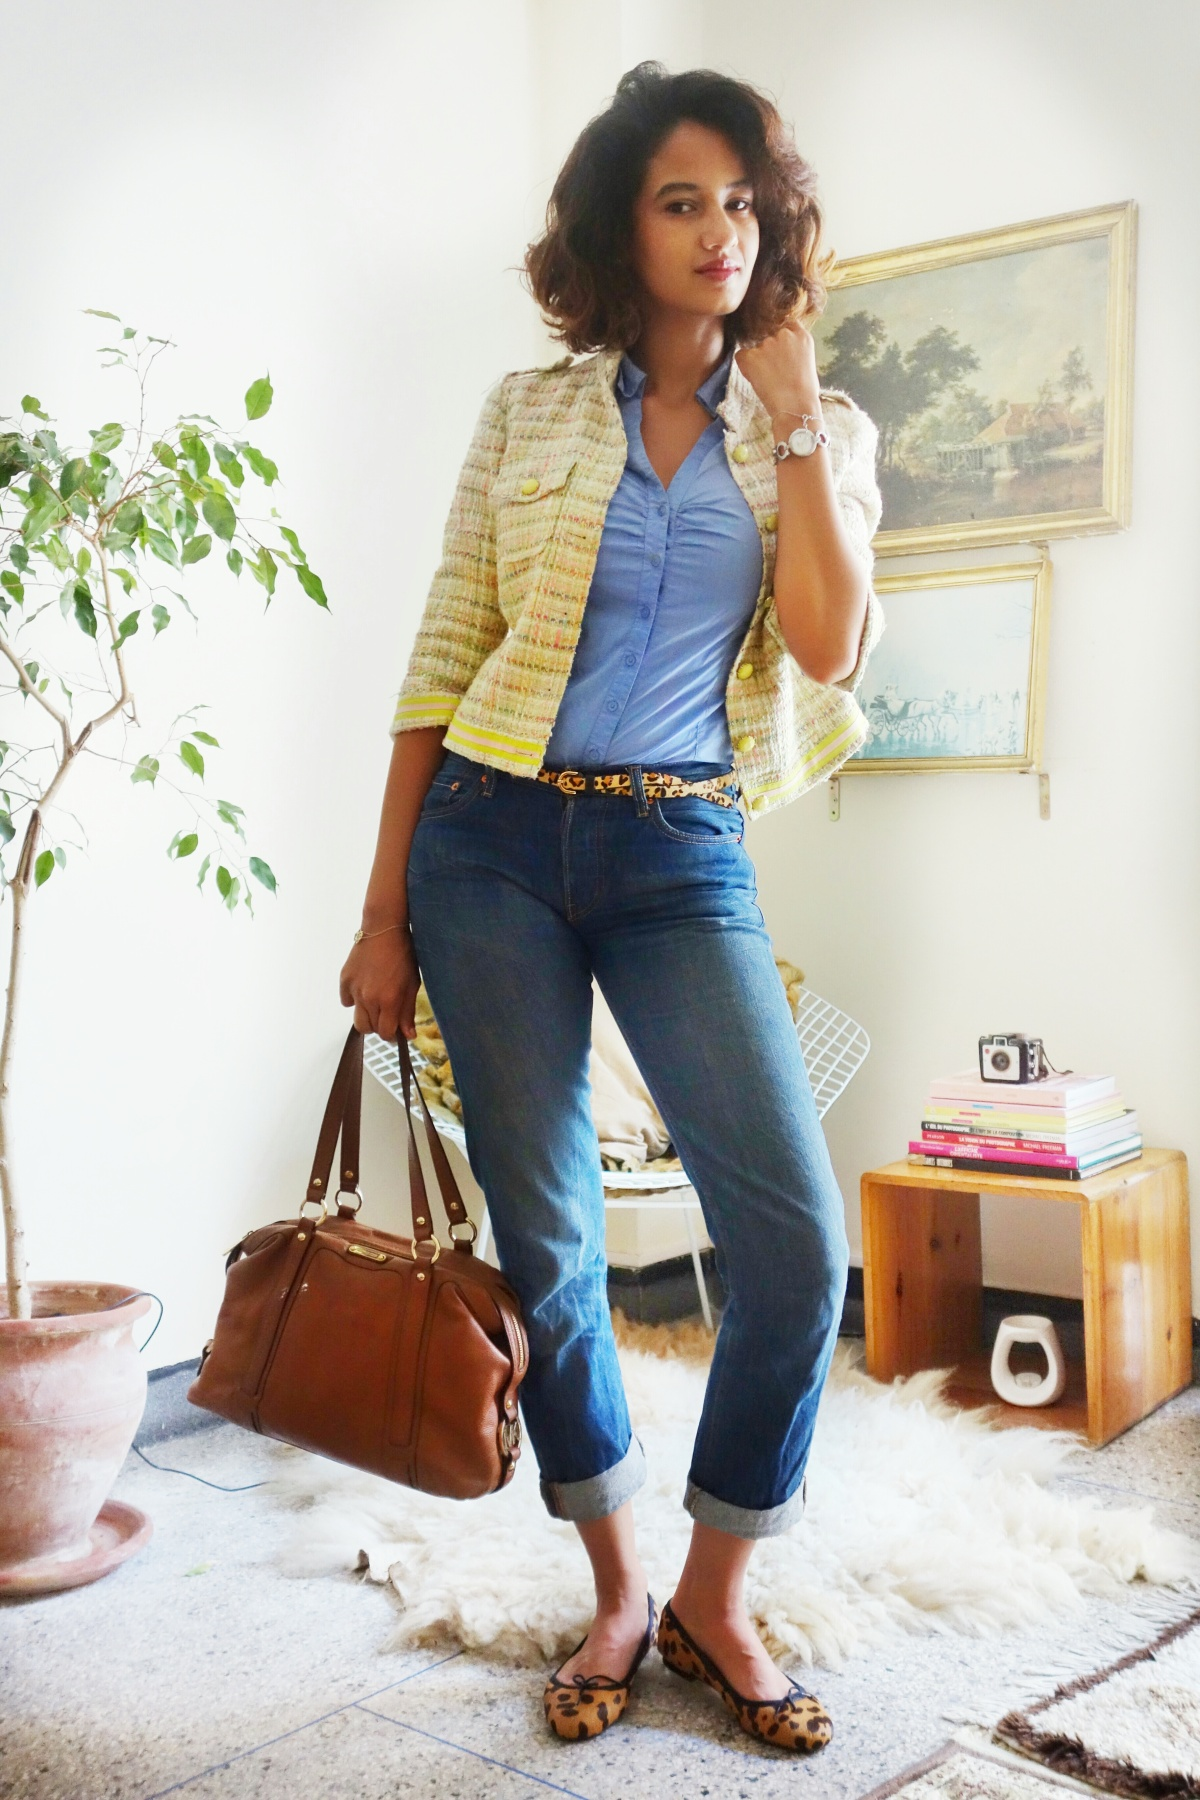 Boyfriend jeans office OOTD 2